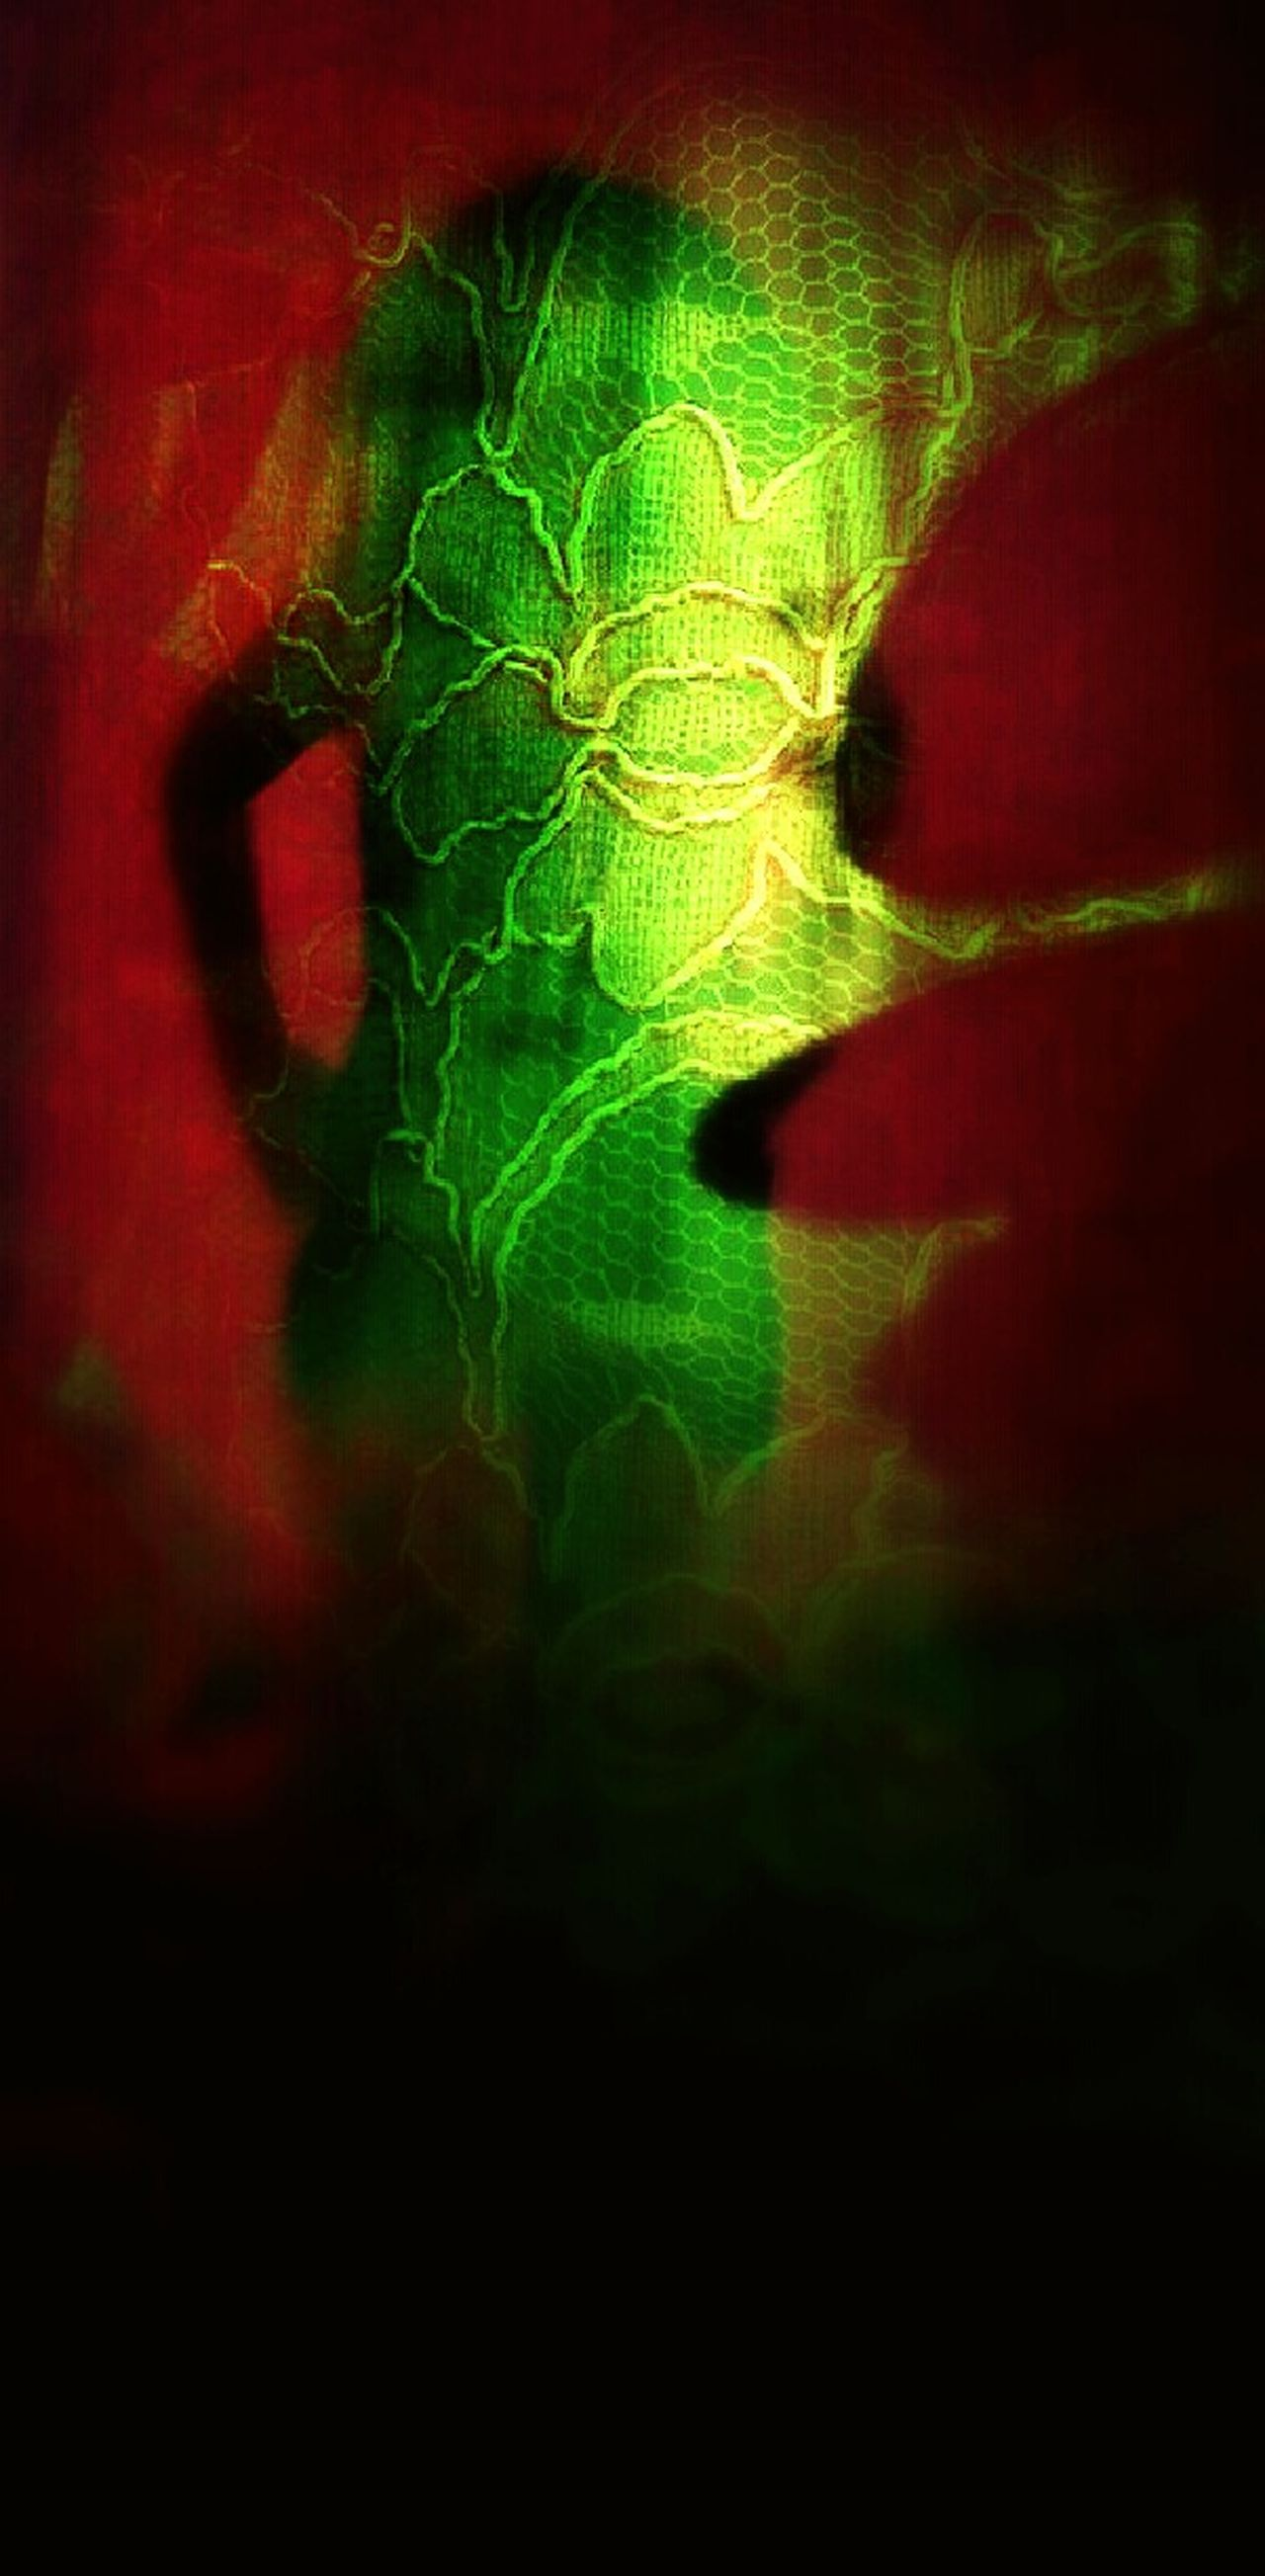 Red Abstract Green Color Backgrounds Indoors  Close-up Silouette Me Now Sillouettes And Shadows Night Life Artistic Front View Artoftheday EyeEm Gallery Enjoy The New Normal Hello World Check This Out My Unique Style EyeEmbestshots From My Point Of View Hanging Out Digitally Generated Relaxation Human Body Part People